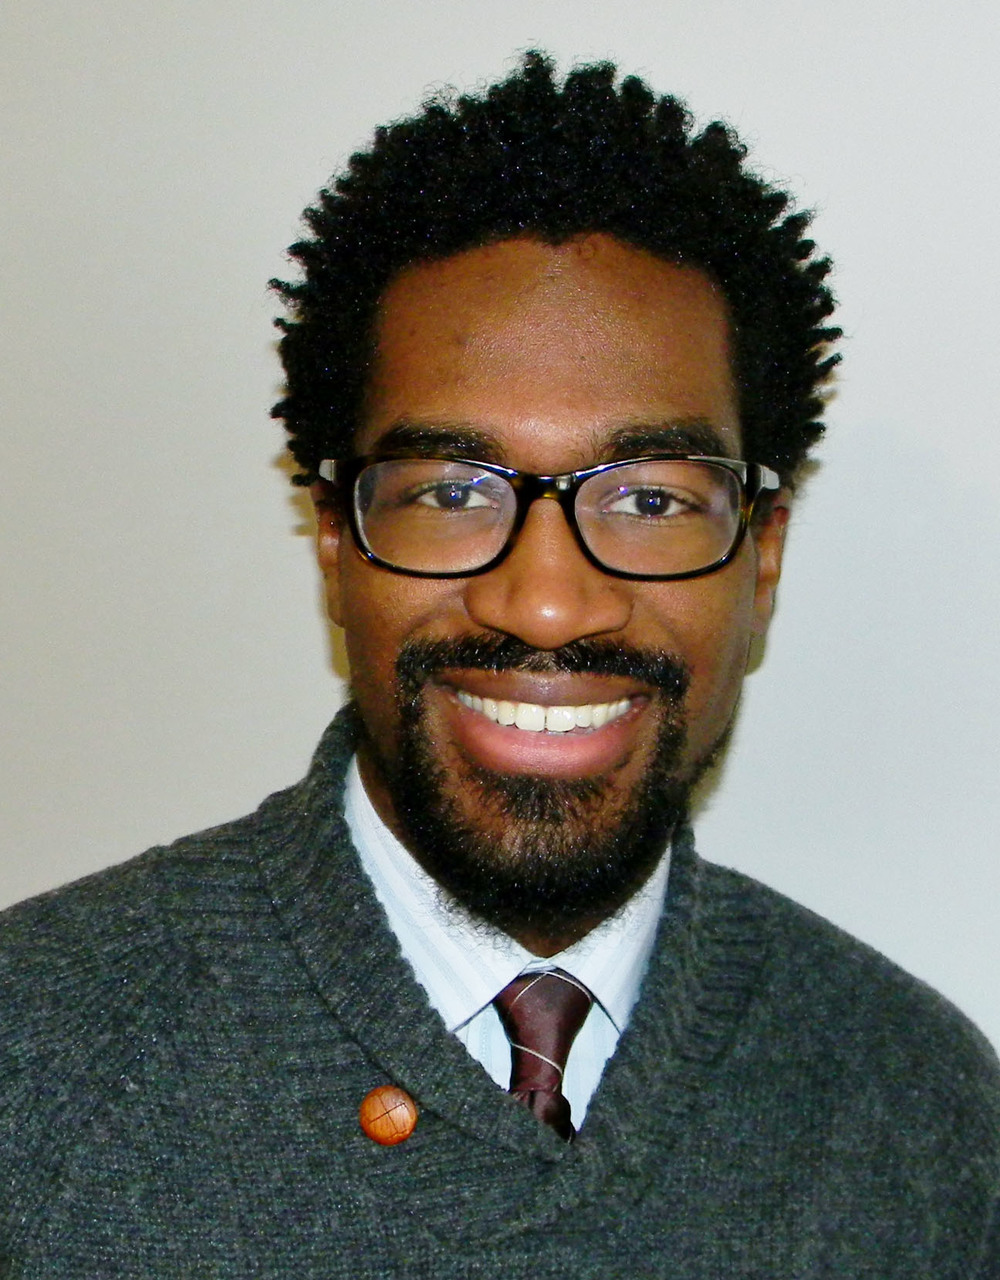 Decoteau J. Irby, Ph.D., Member